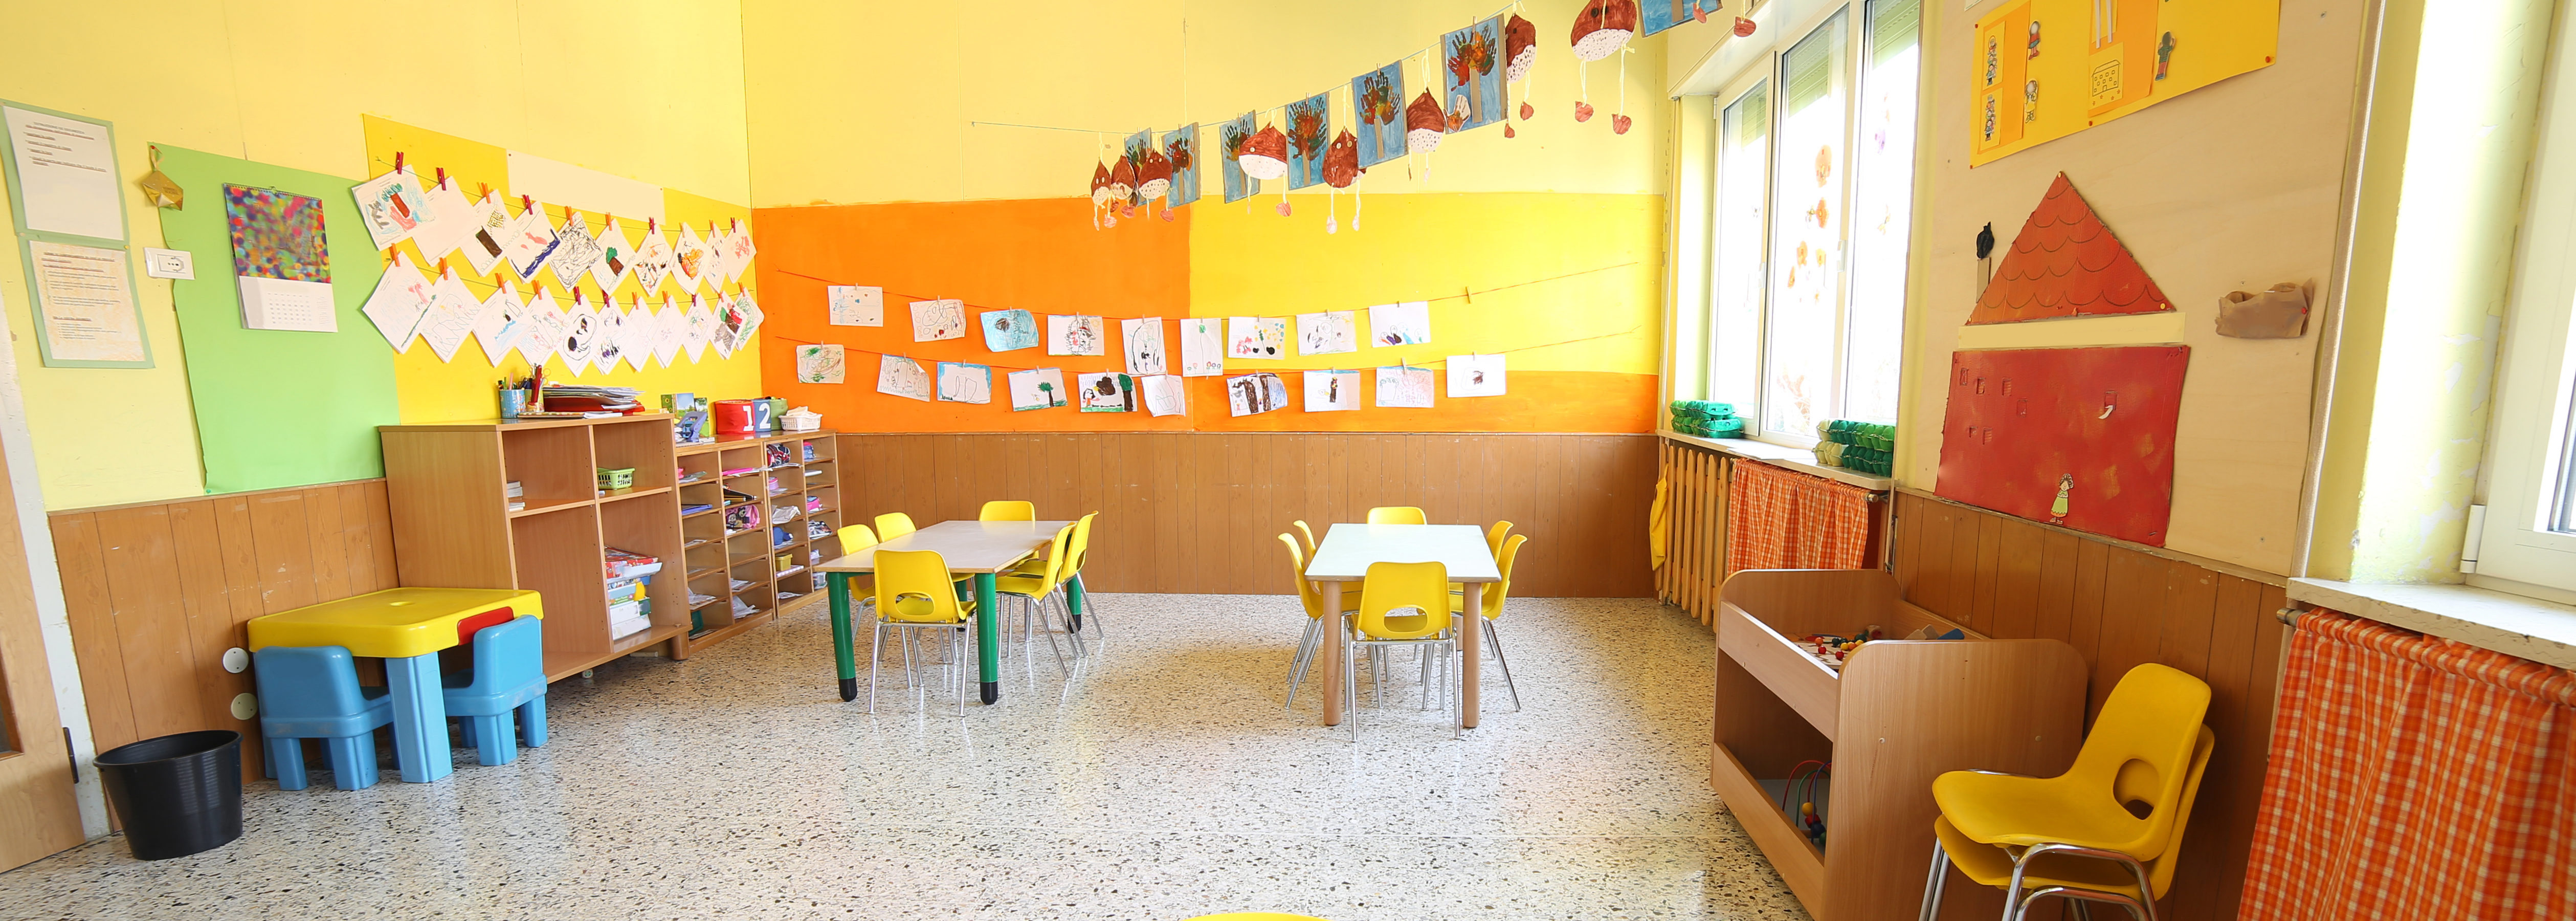 what to do if my child was sexually abused at daycare, sexual abuse in daycare